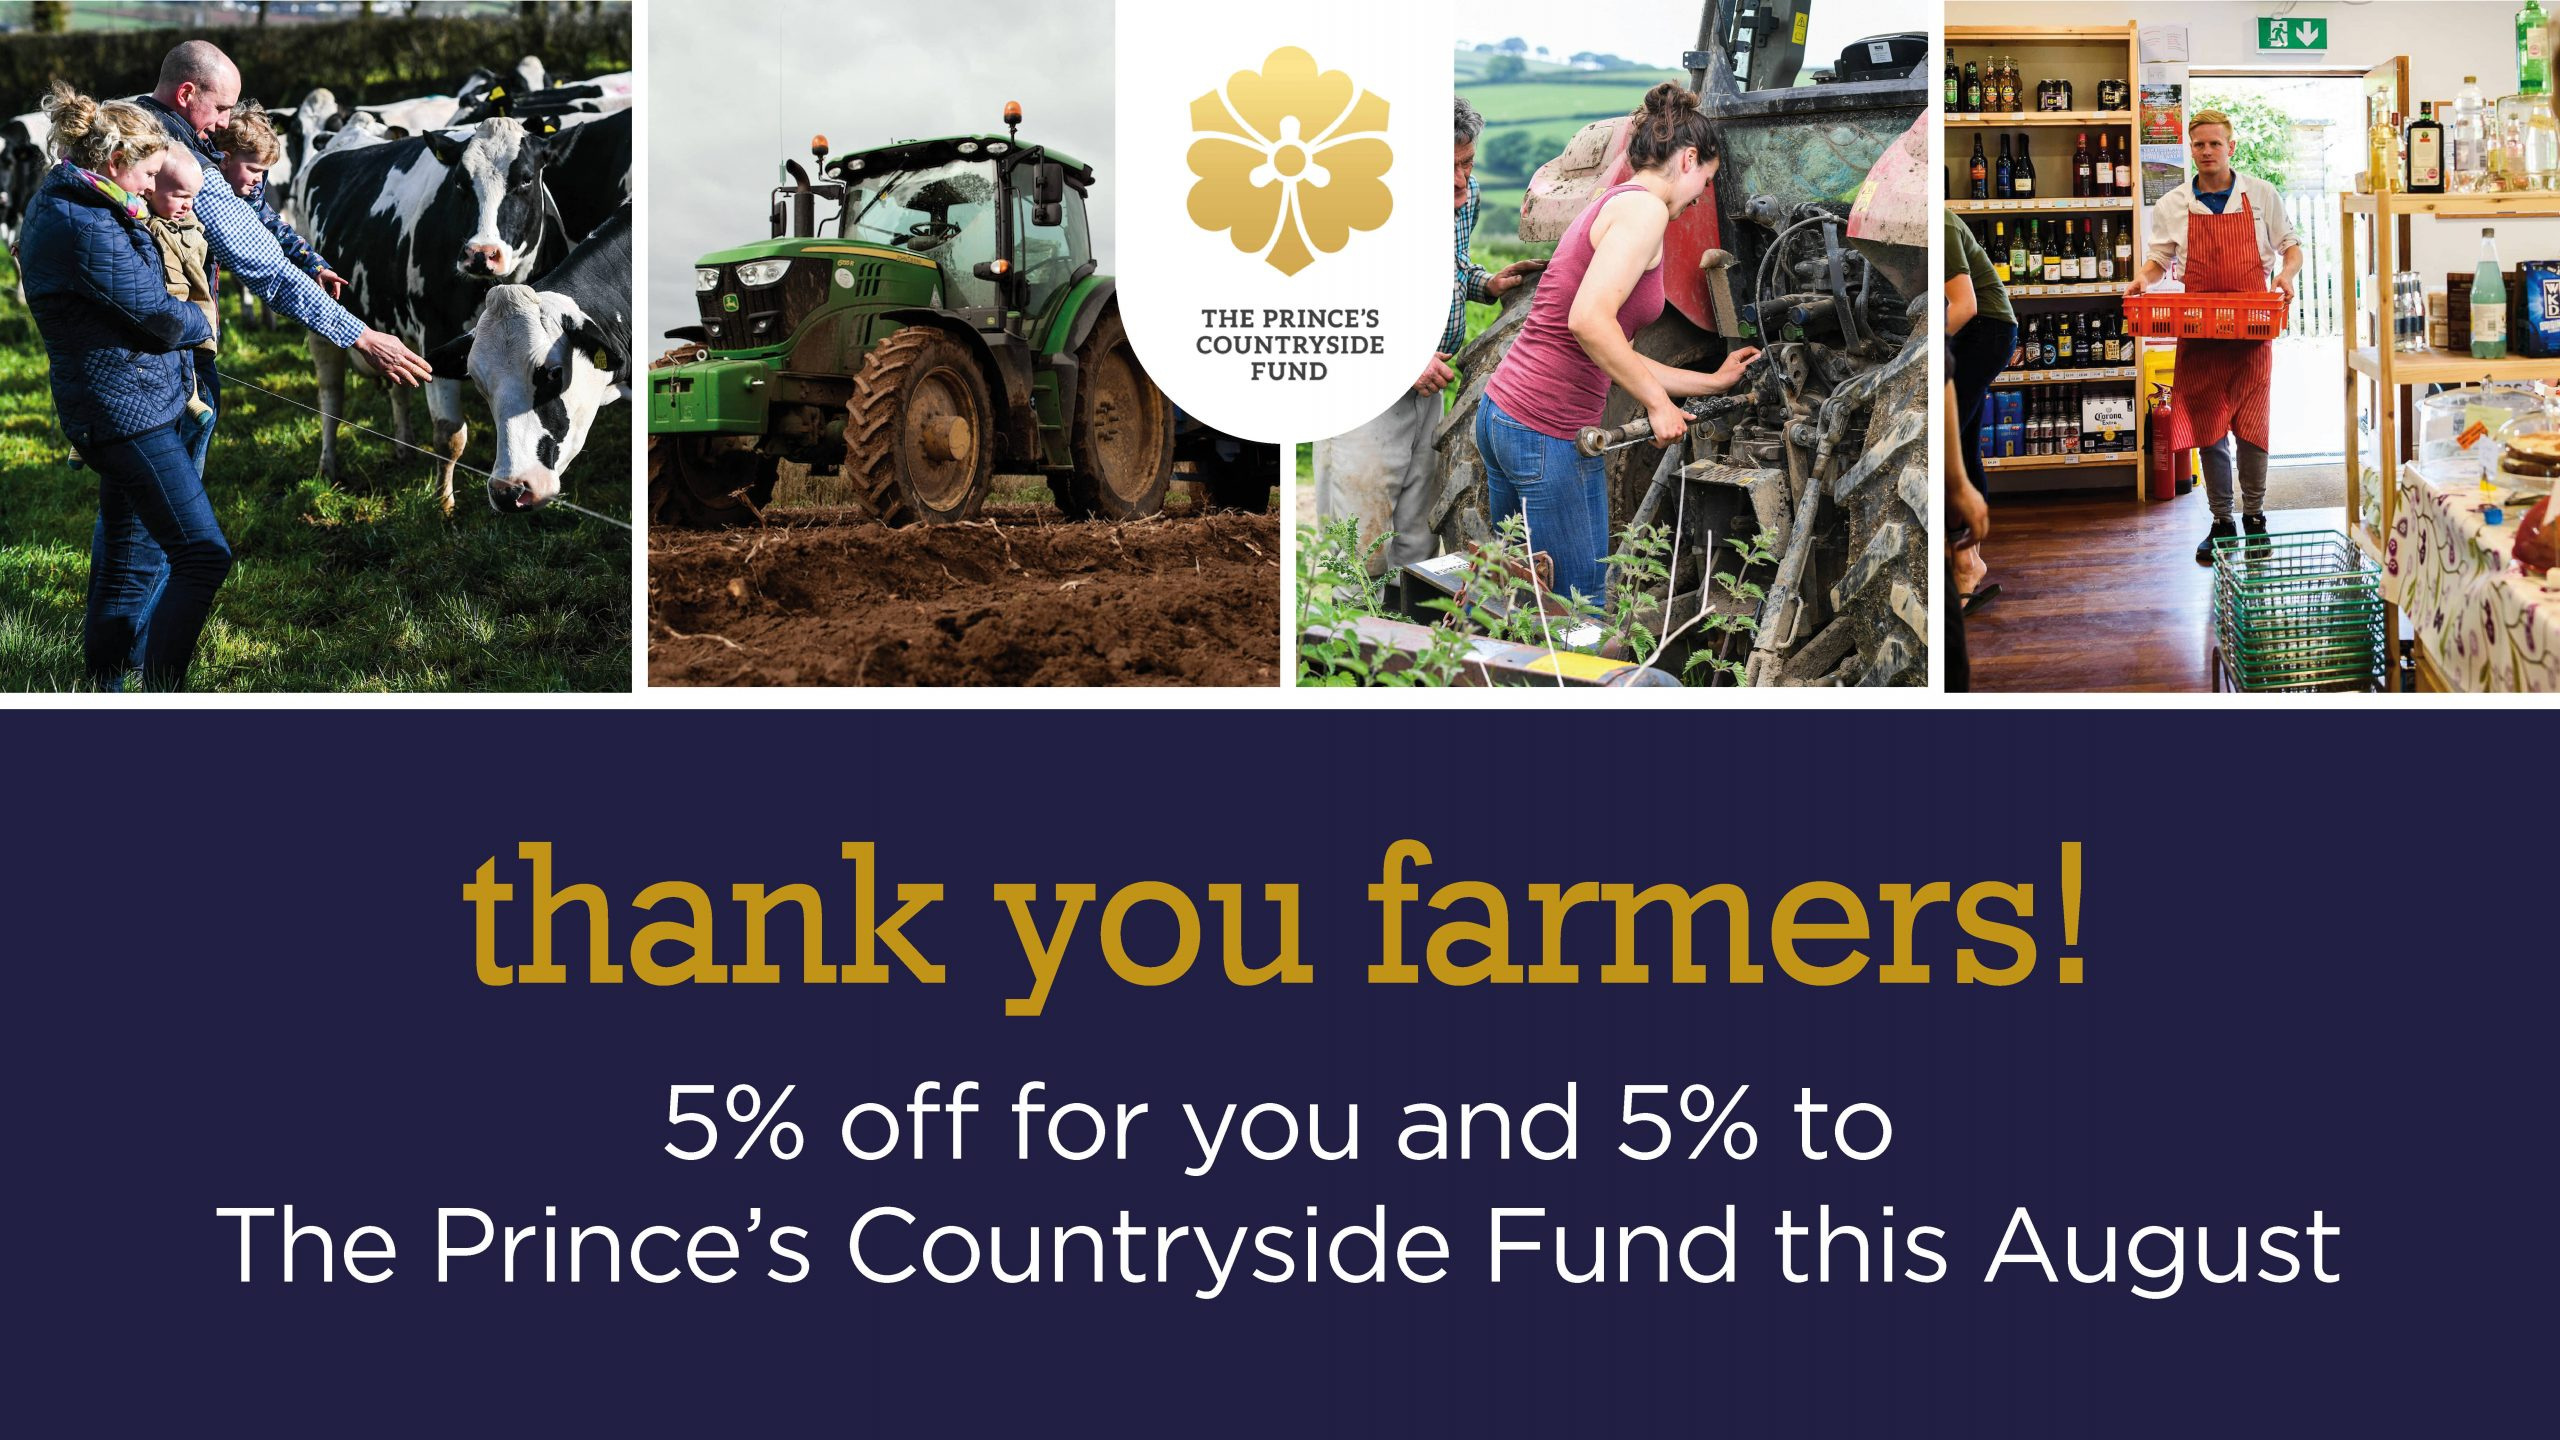 Thank You Farmers – You Save 5%, We'll Donate 5%